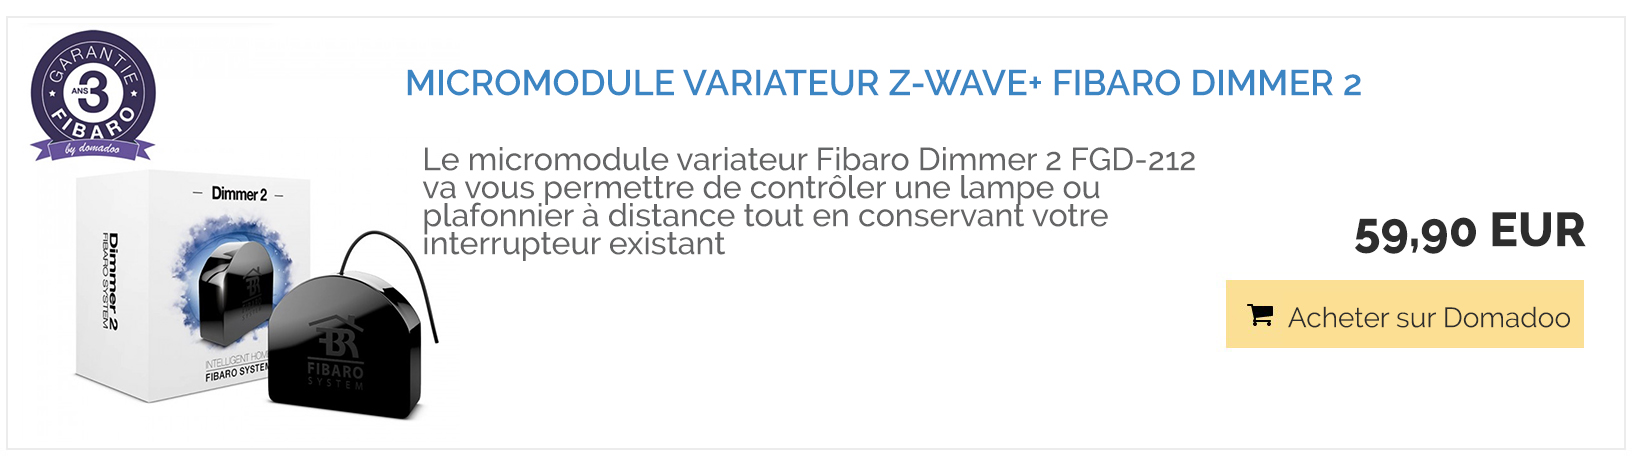 dimmer-fibaro-promo-domadoo-domotique